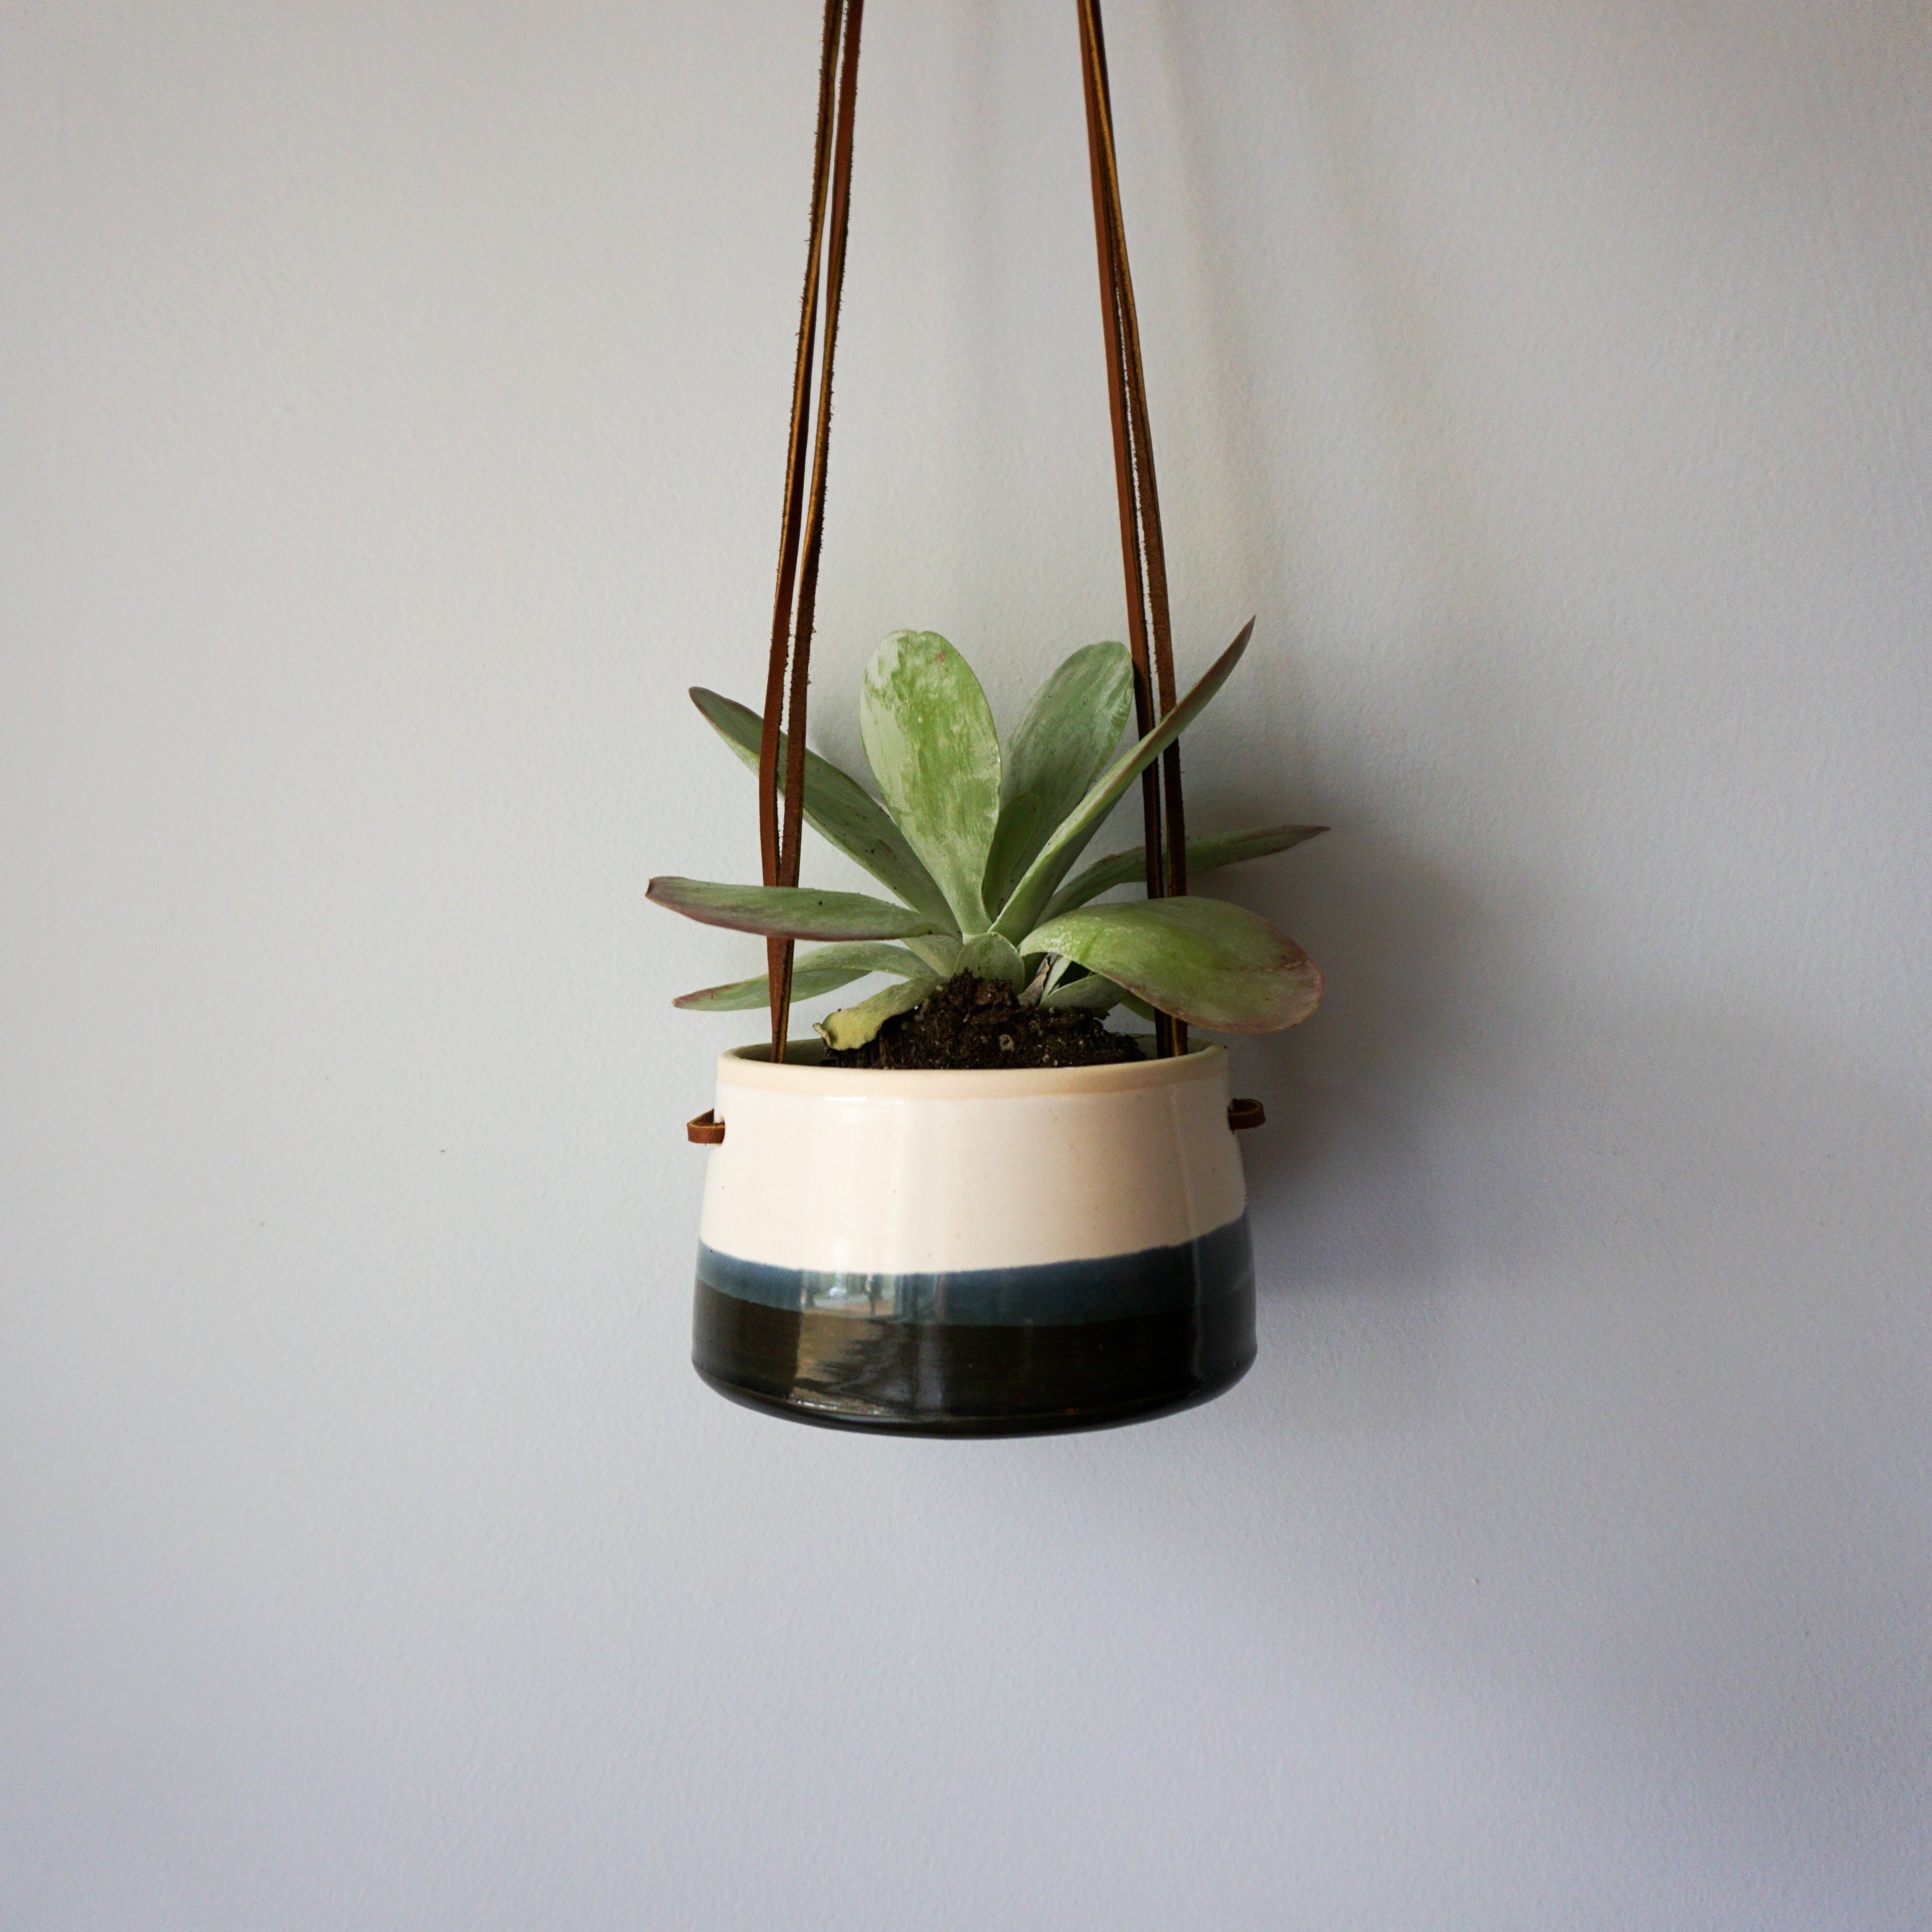 Hanging Planter in Black and White | Products | Hanging ...